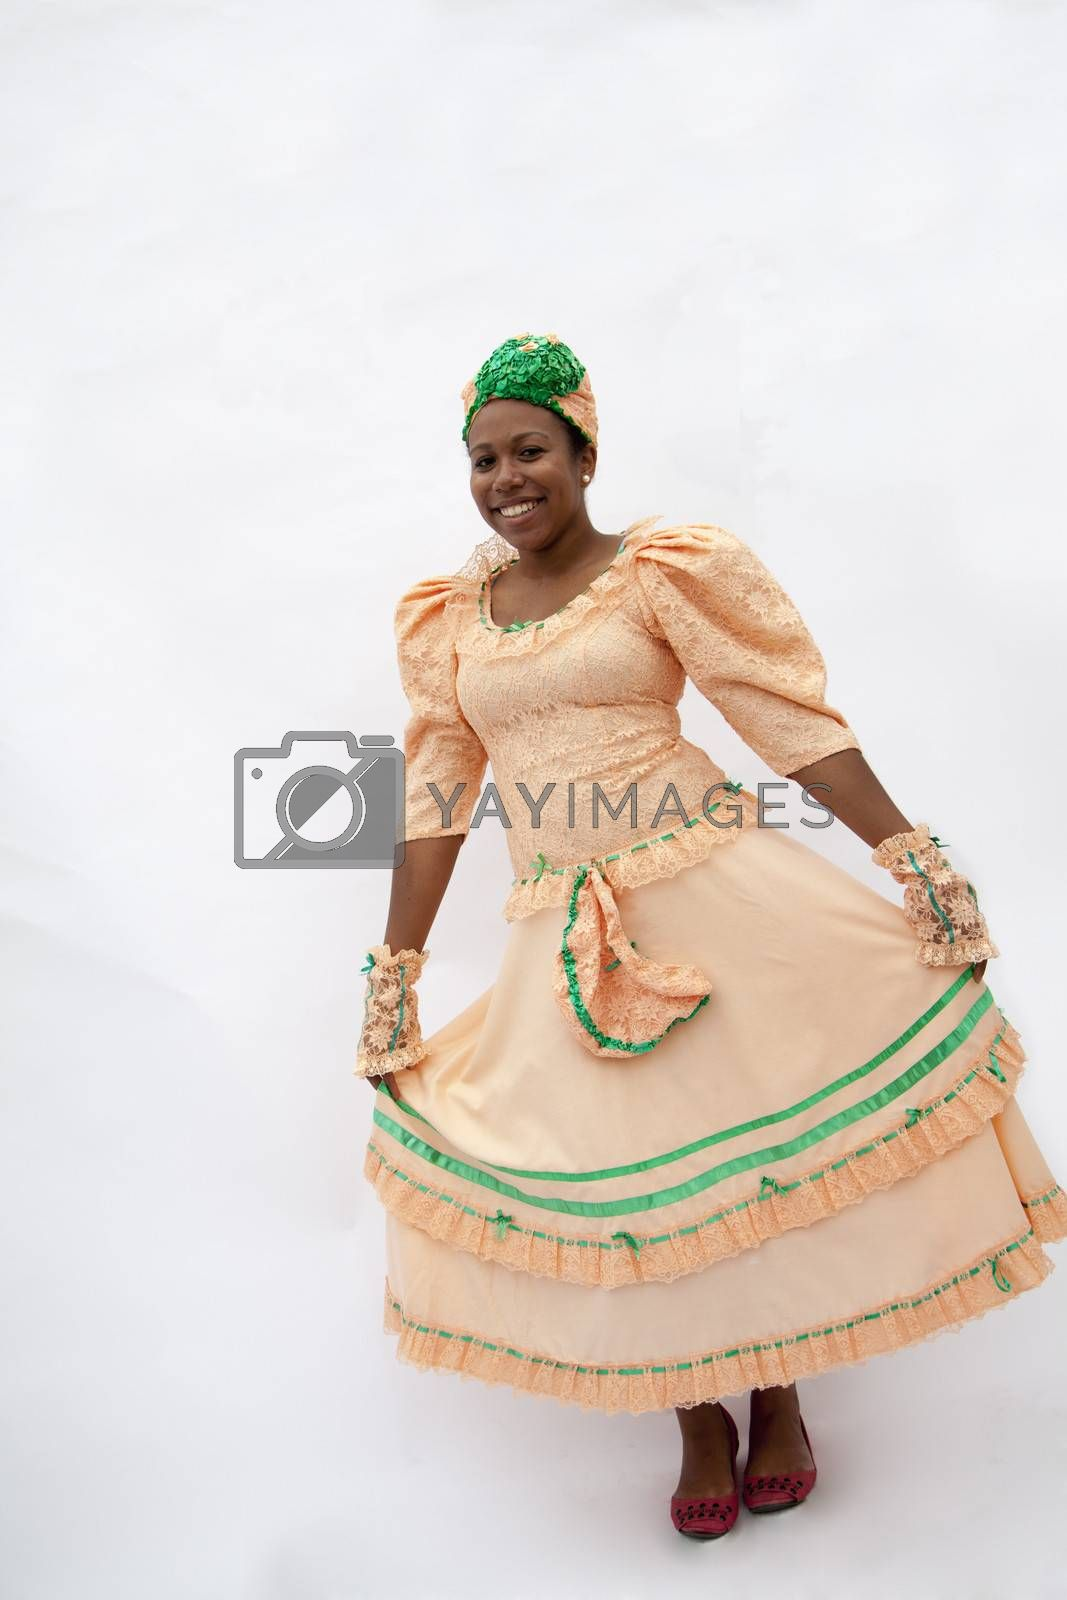 Portrait of young smiling woman holding her skirt in traditional clothing from the Caribbean, studio shot by XiXinXing